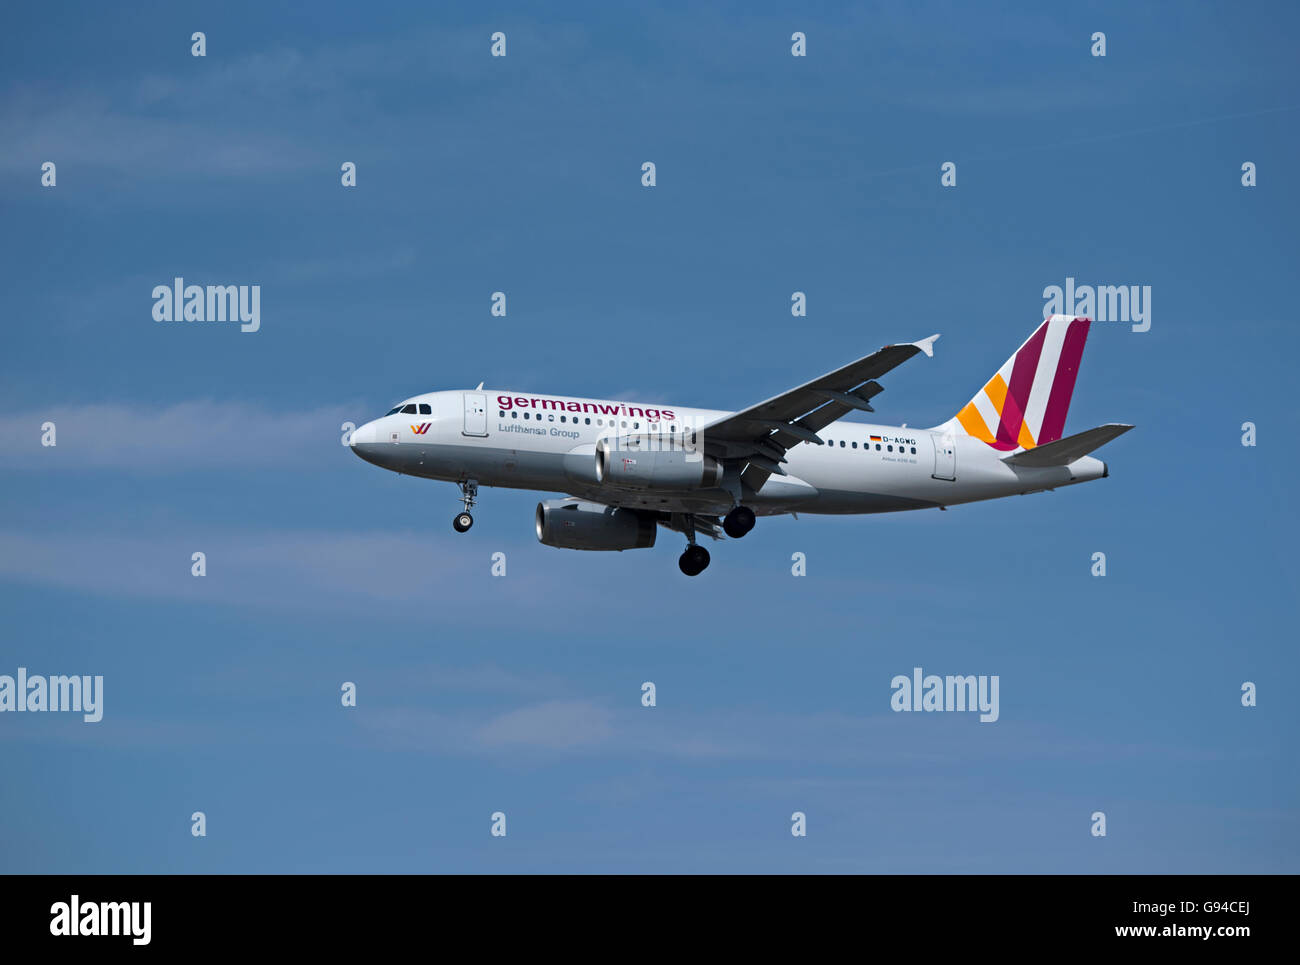 German wings Airbus 319-132 Registration D-AGWG coming into Heathrow Airport London, UK.  SCO 10,457. - Stock Image